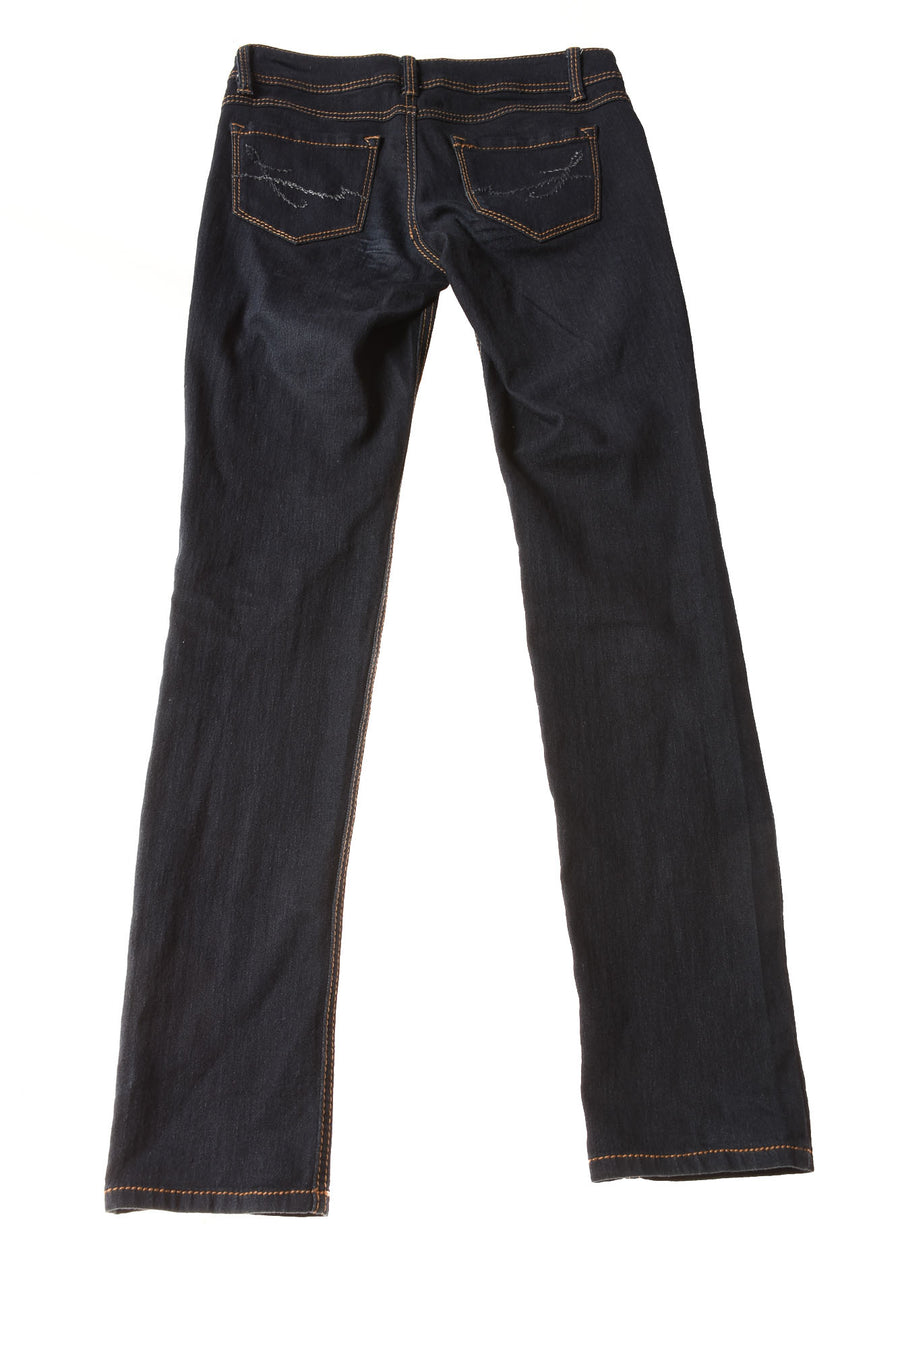 USED Fragile Women's Jeans 3 Blue